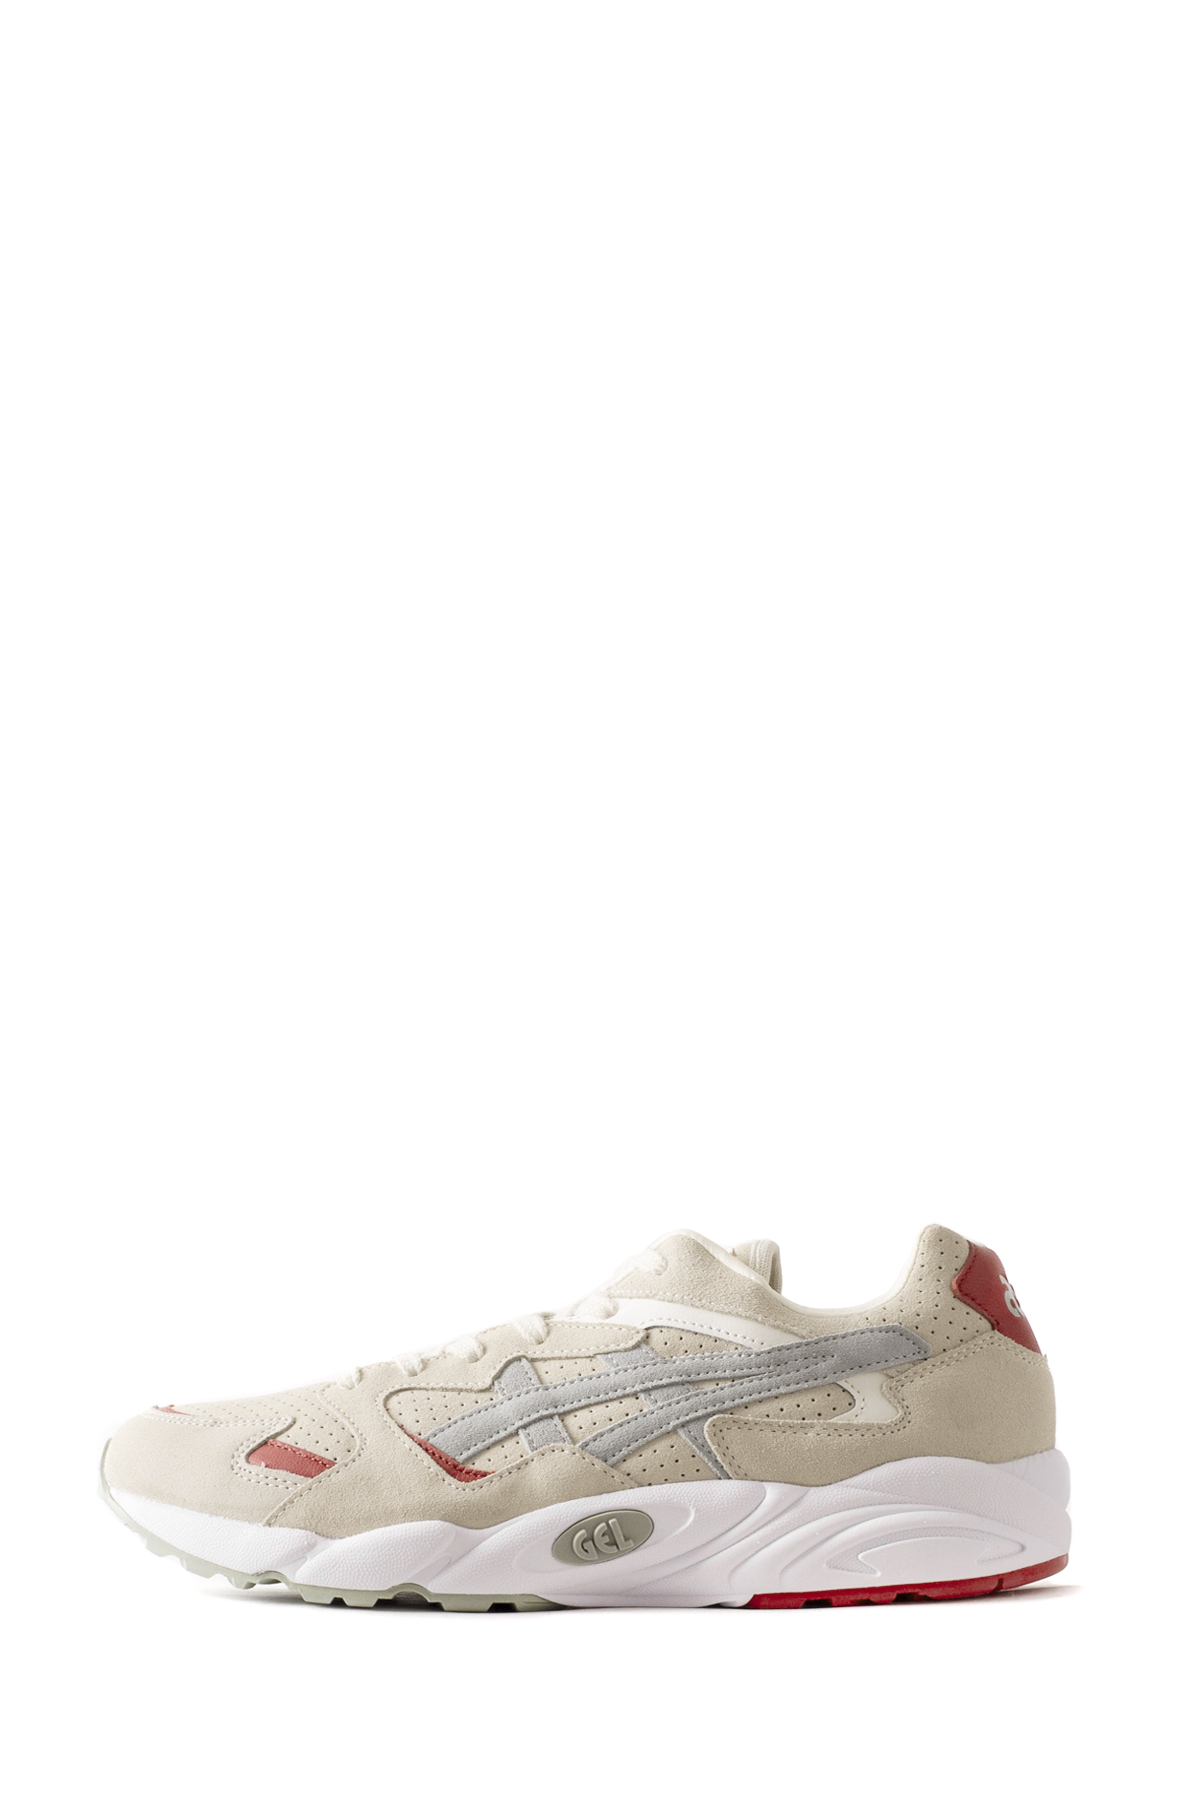 asics tiger : GEL-DIABLO (Birch / Seagrass)